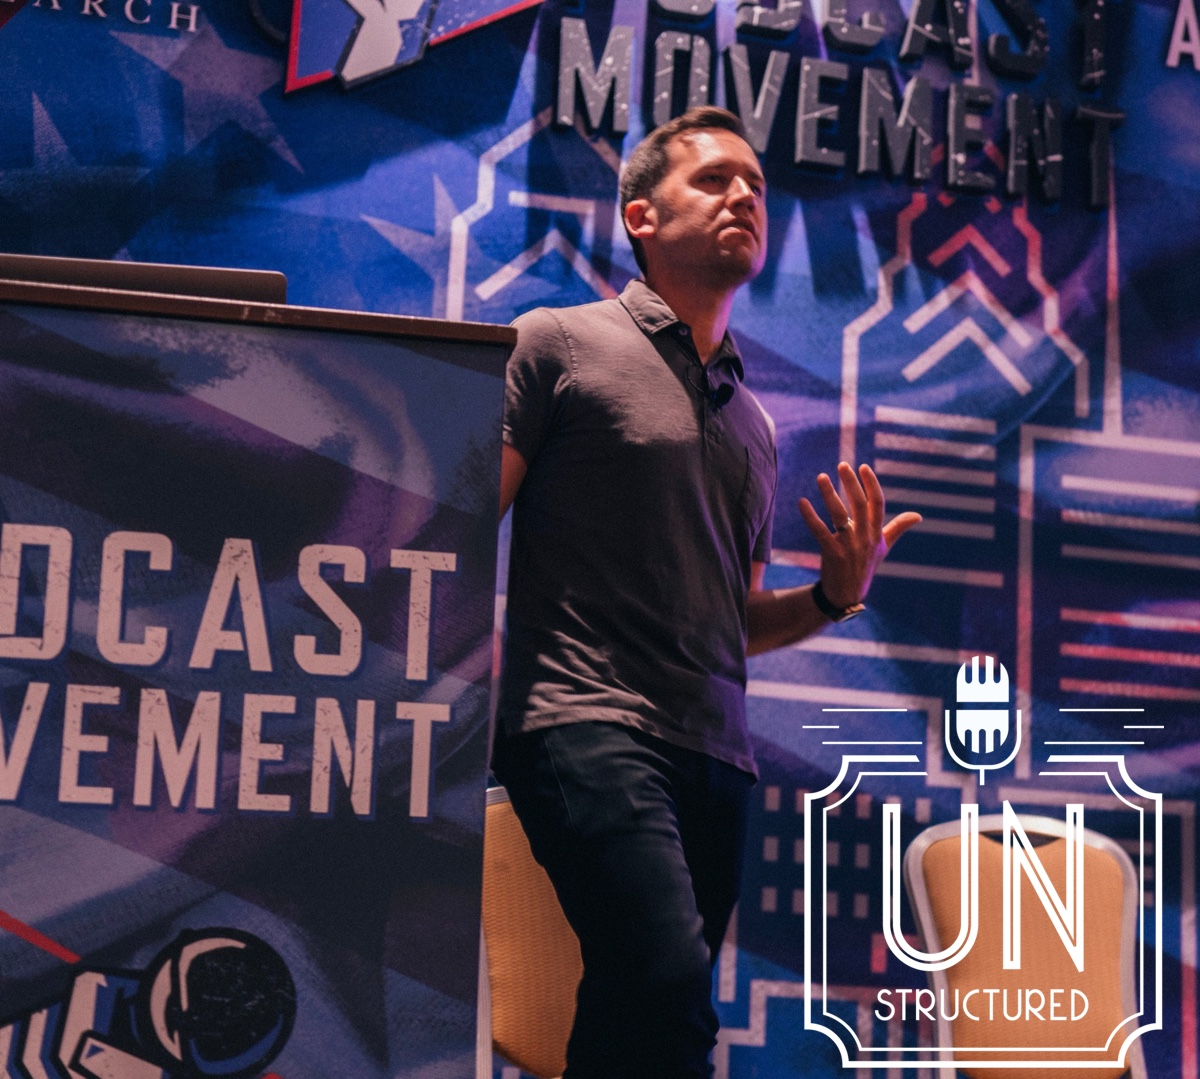 043 - Mike Mignano - Unique wide-ranging and well-researched unstructured interviews hosted by Eric Hunley UnstructuredPod Dynamic Informal Conversations